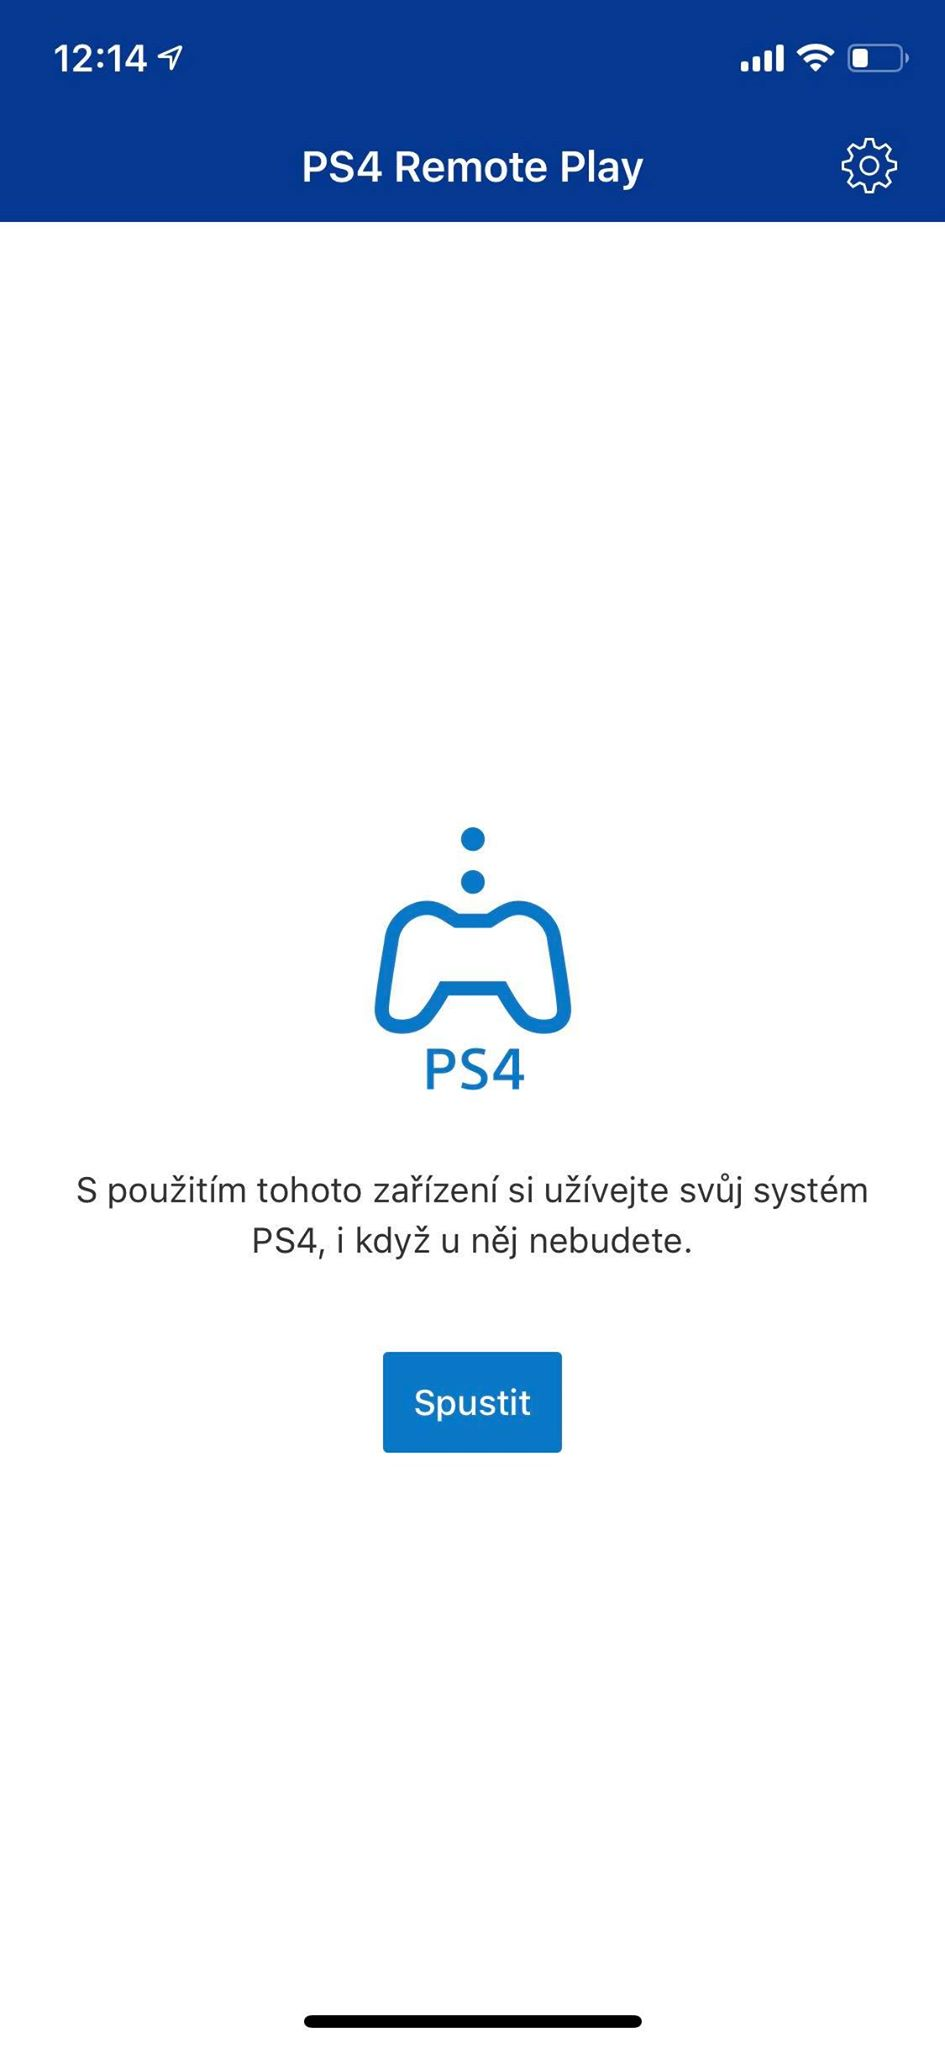 ps4 remote play 1